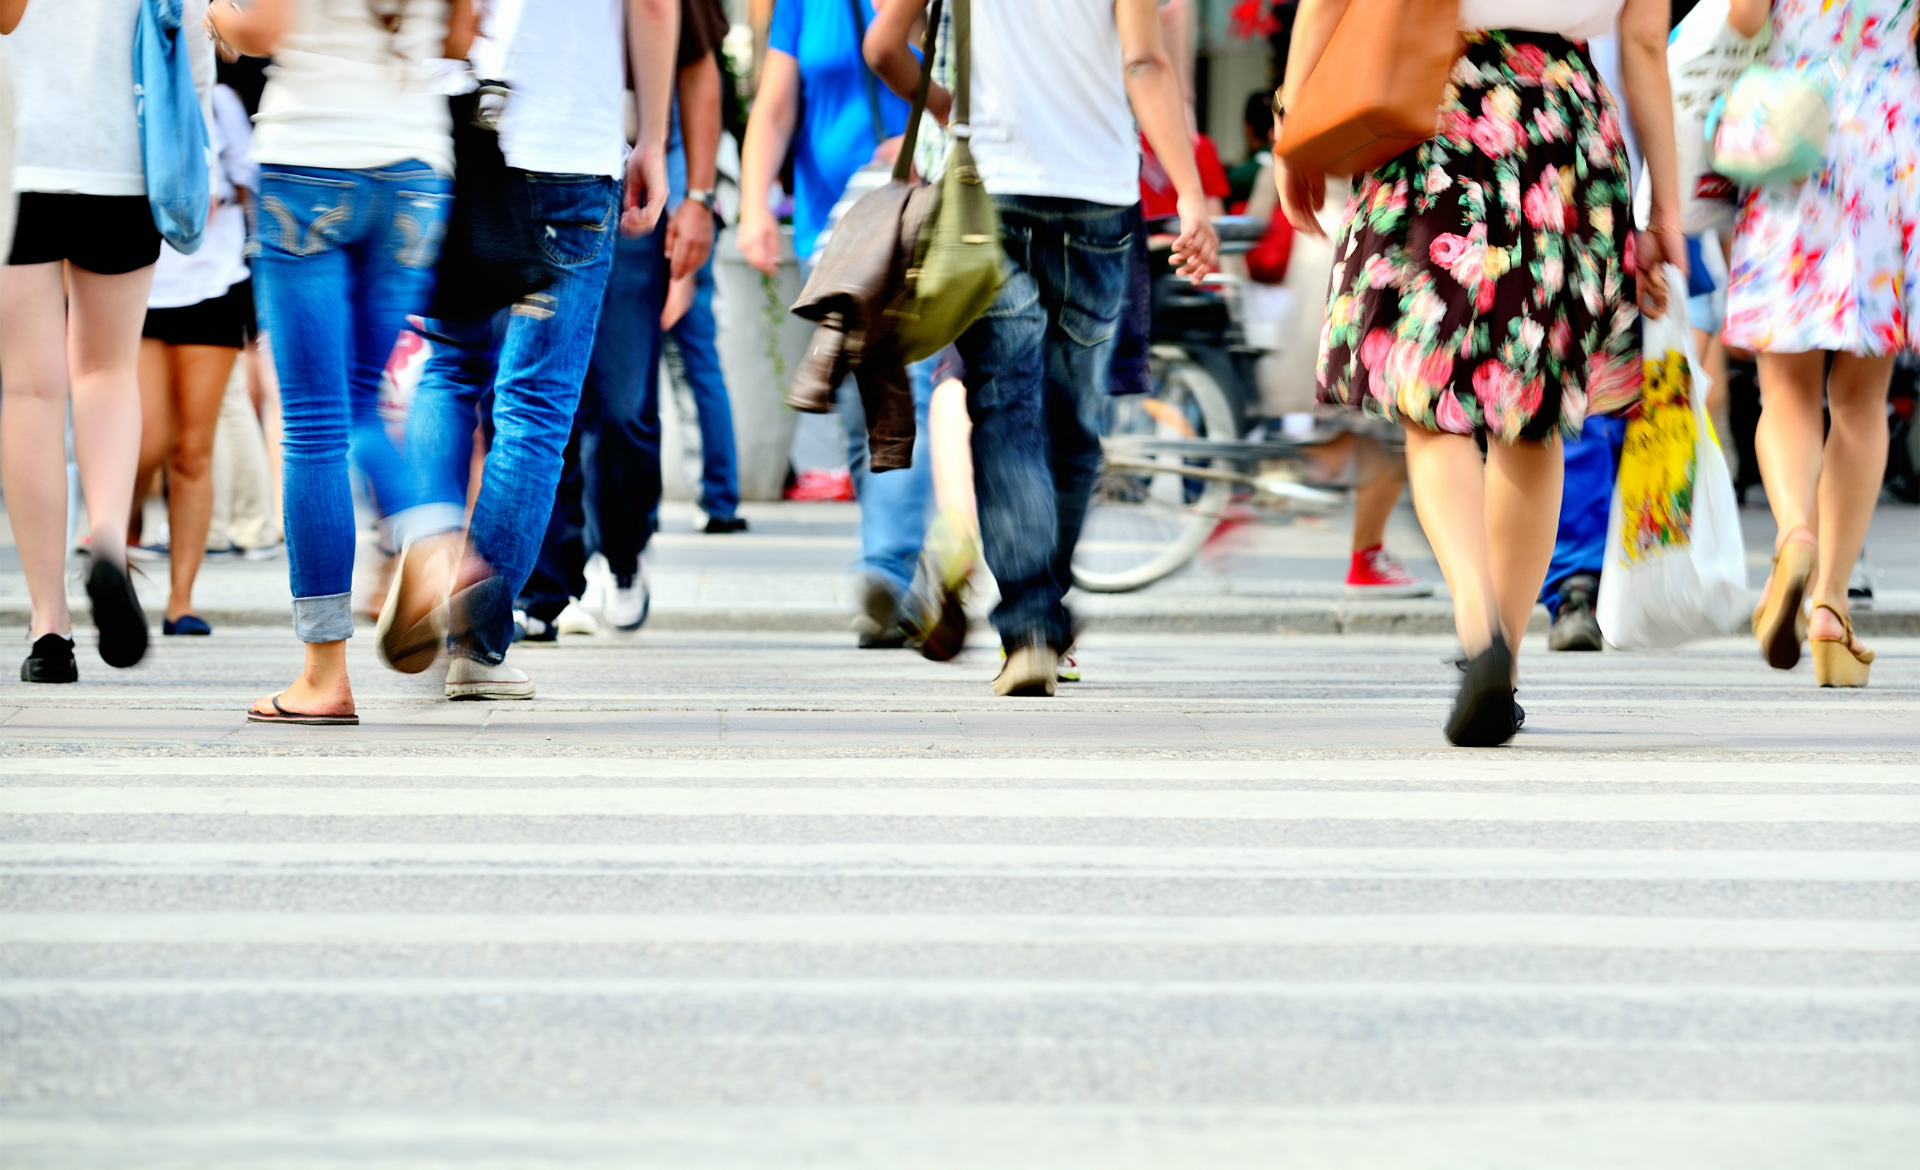 image of legs of people walking in the street